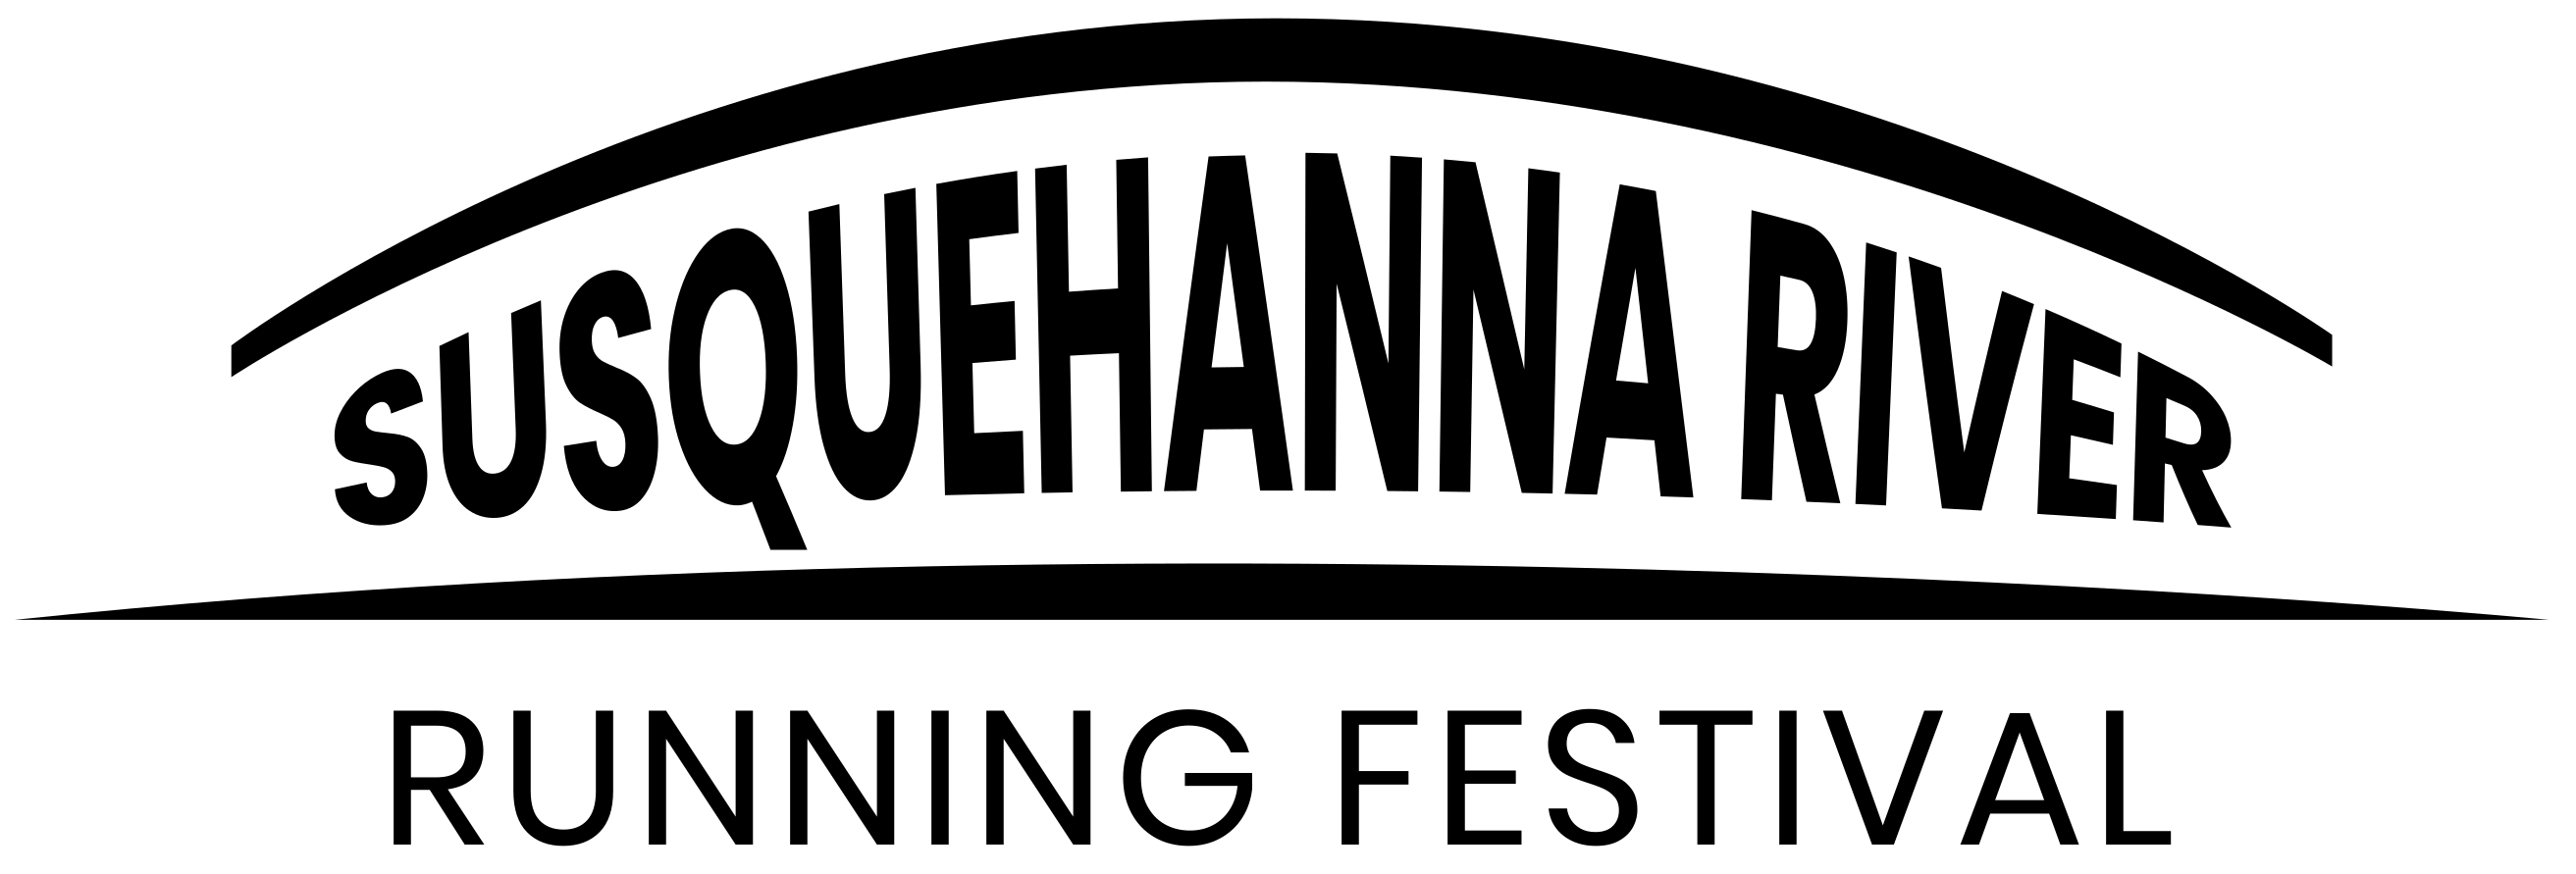 Susquehanna River Running Festival logo on RaceRaves